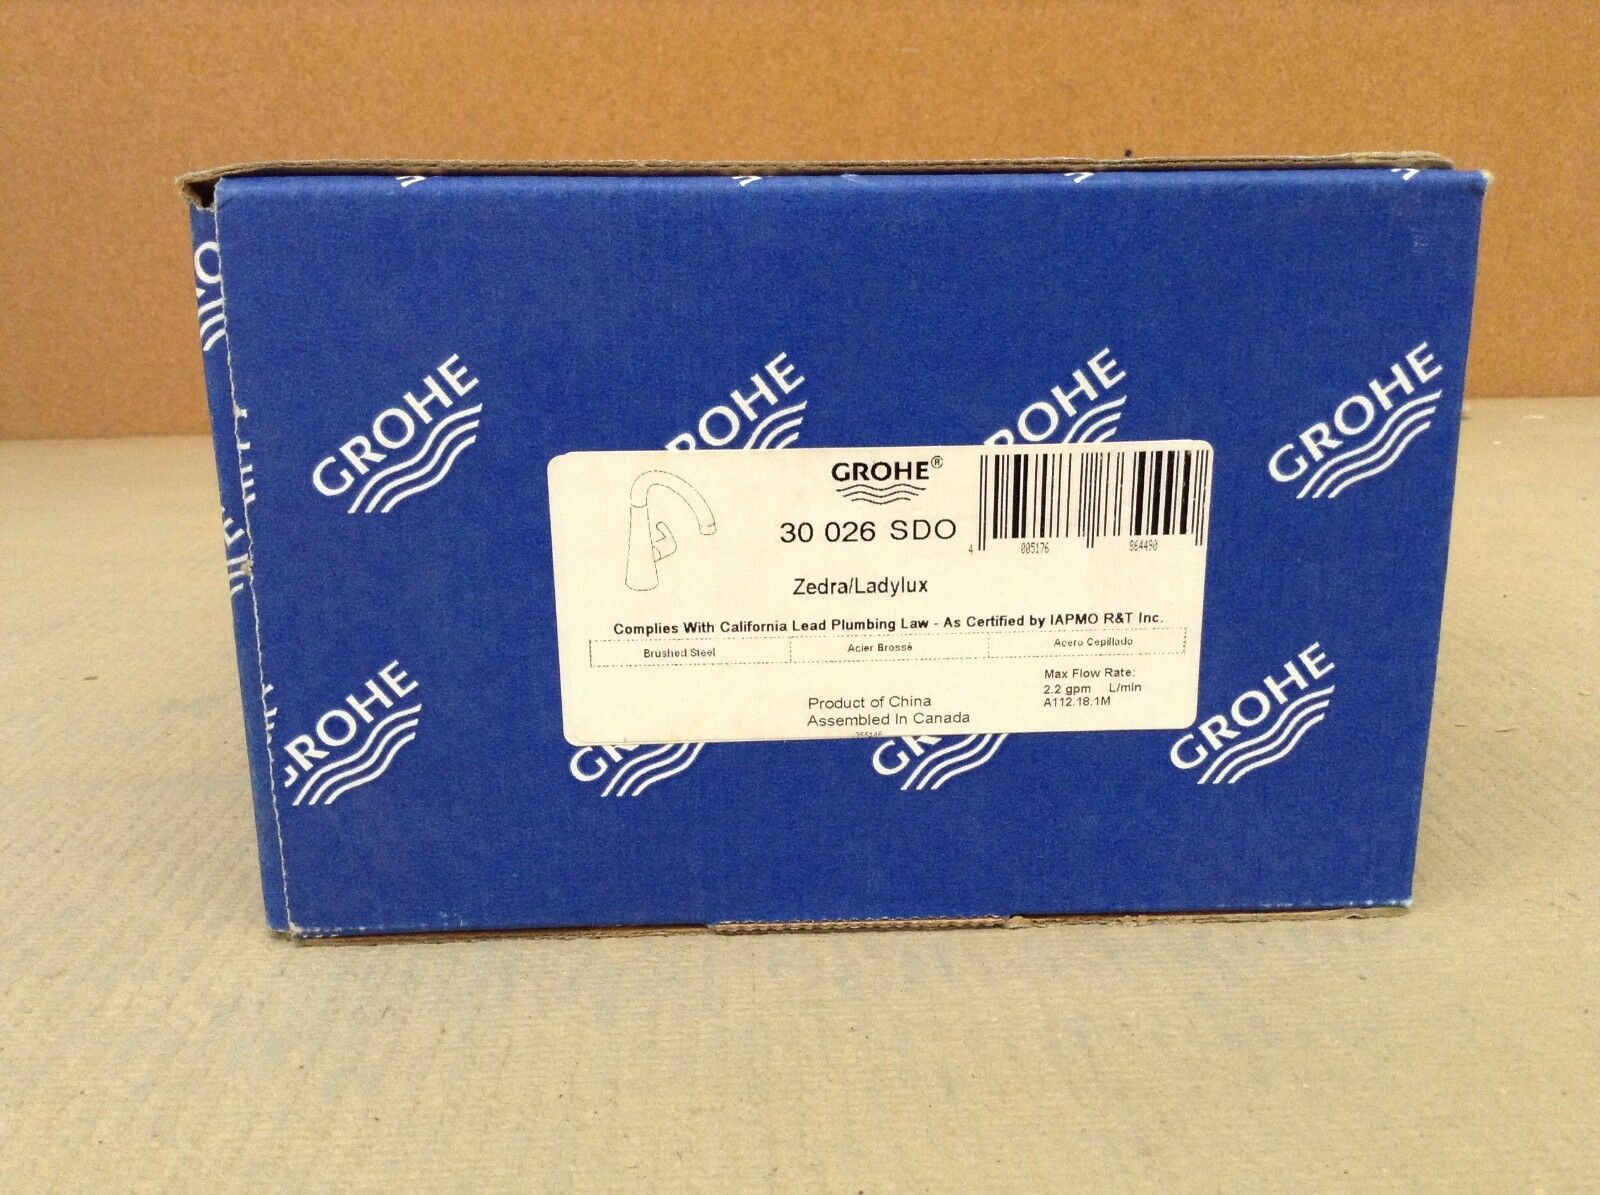 GROHE LADYLUX Single Hole BASIN/PILAR TAP Faucet 30026SD0 Stainless ...